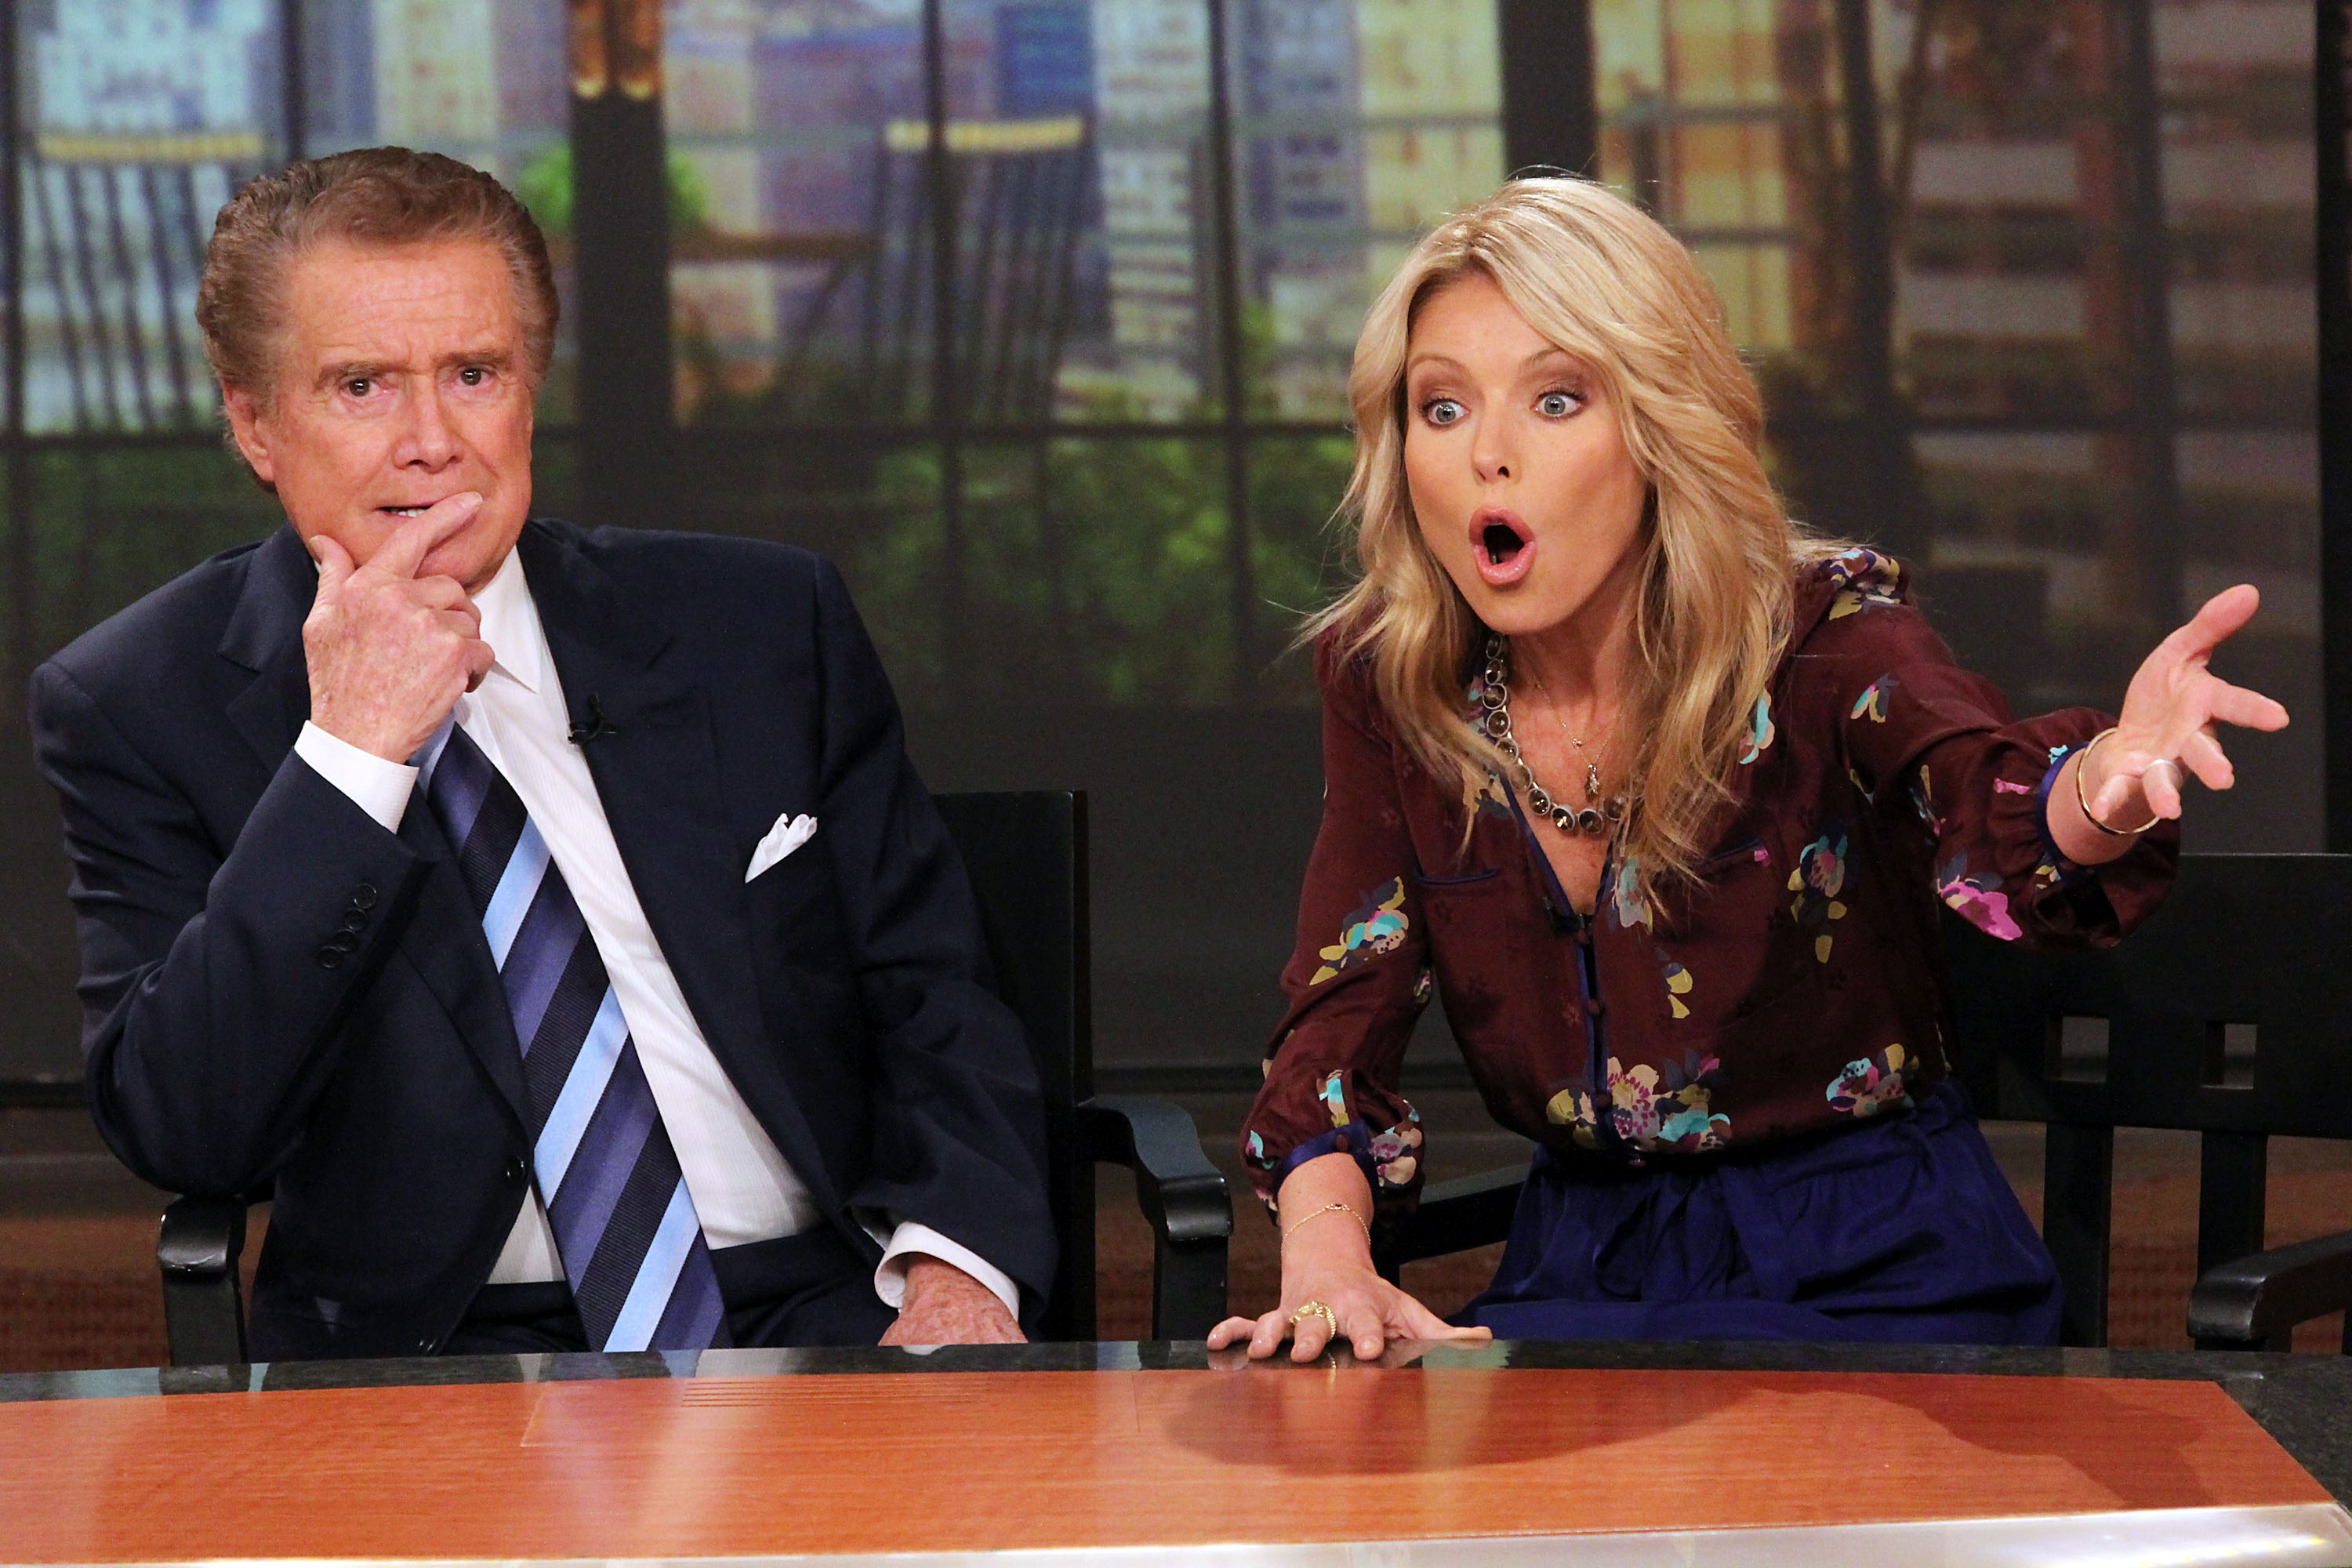 Regis Philbin Opens Up To Larry King About Kelly Ripa